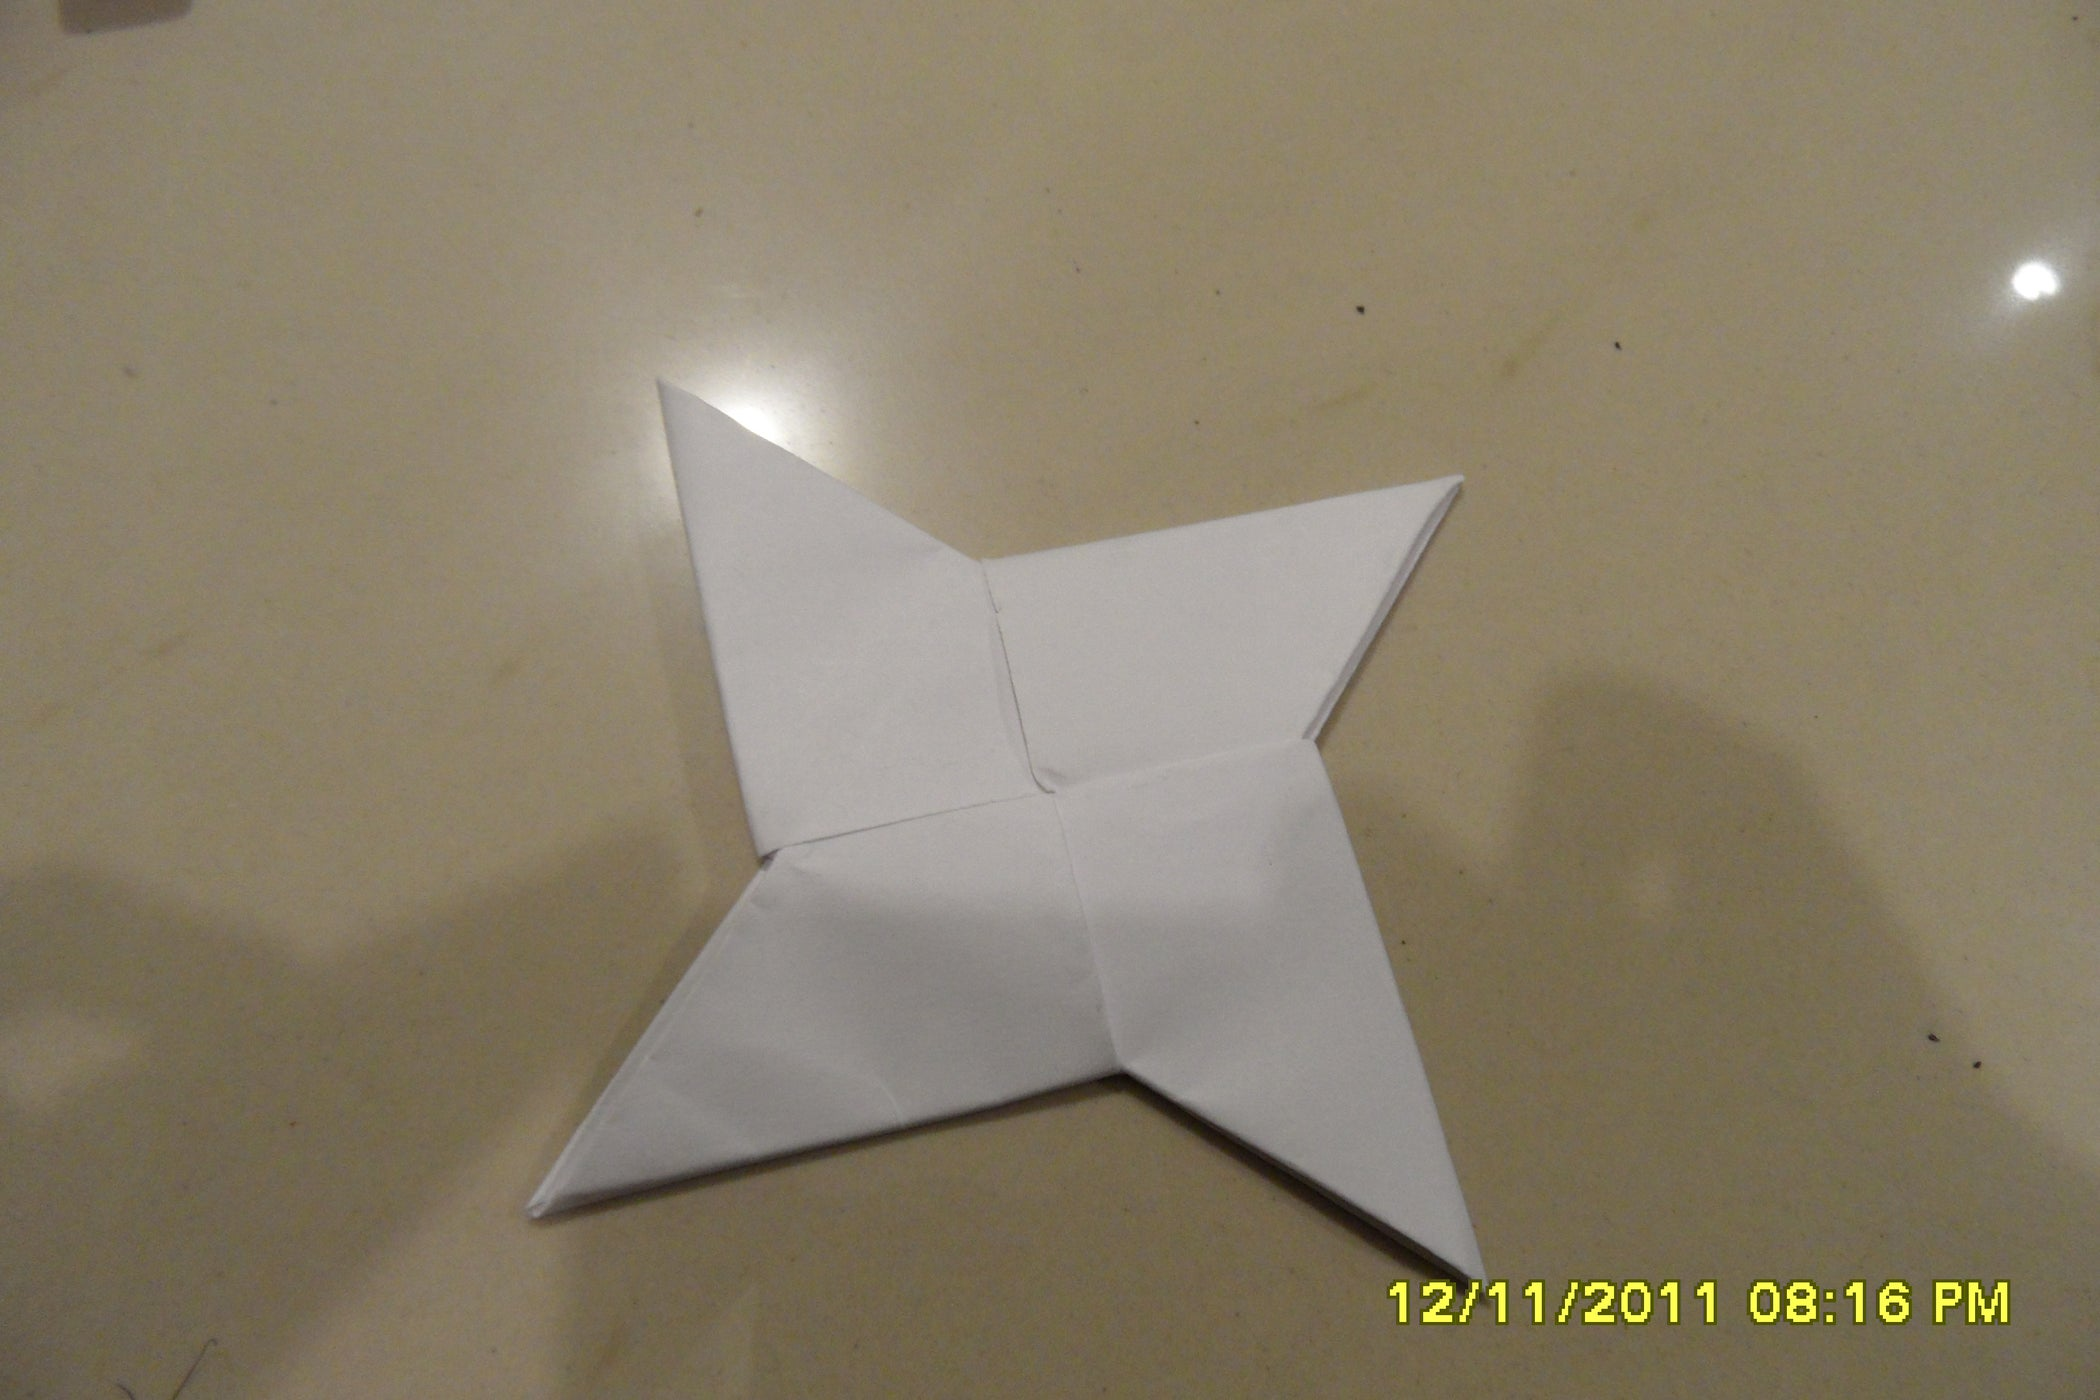 How To Make A Paper Shuriken 13 Steps 3d Origami Animation Diagrams Animated Diagram Fold